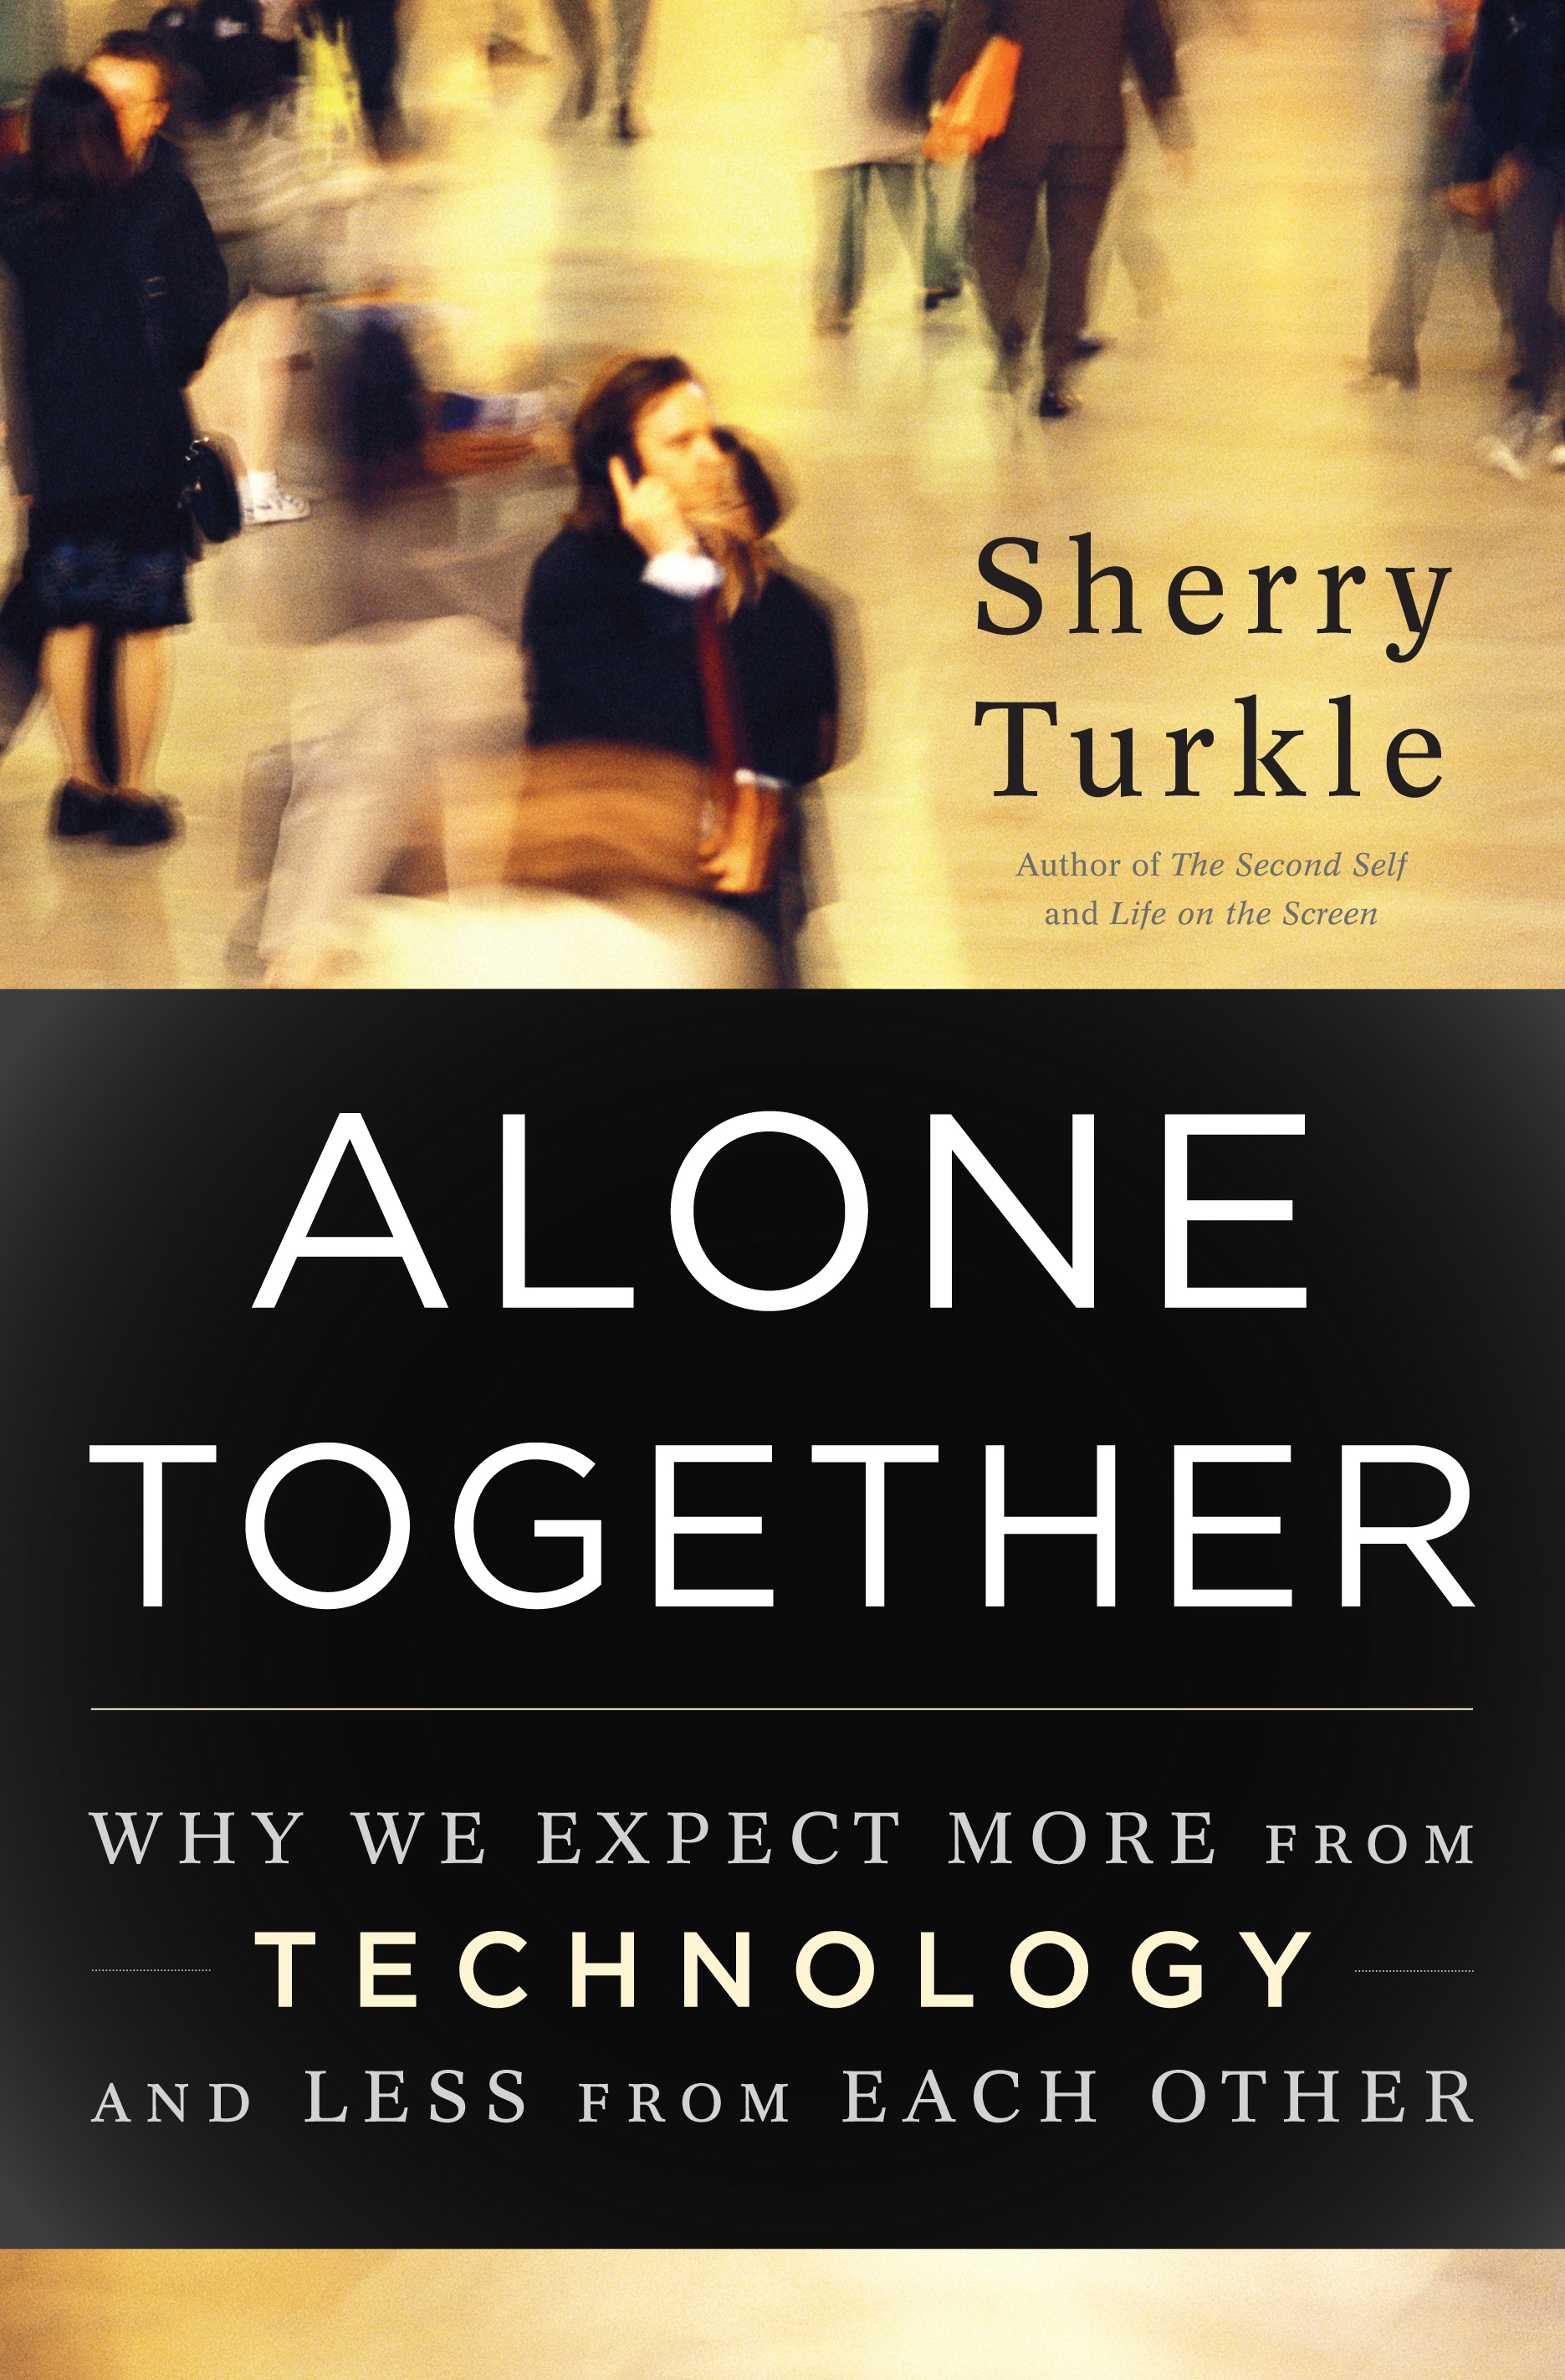 alone-together-cover.jpg